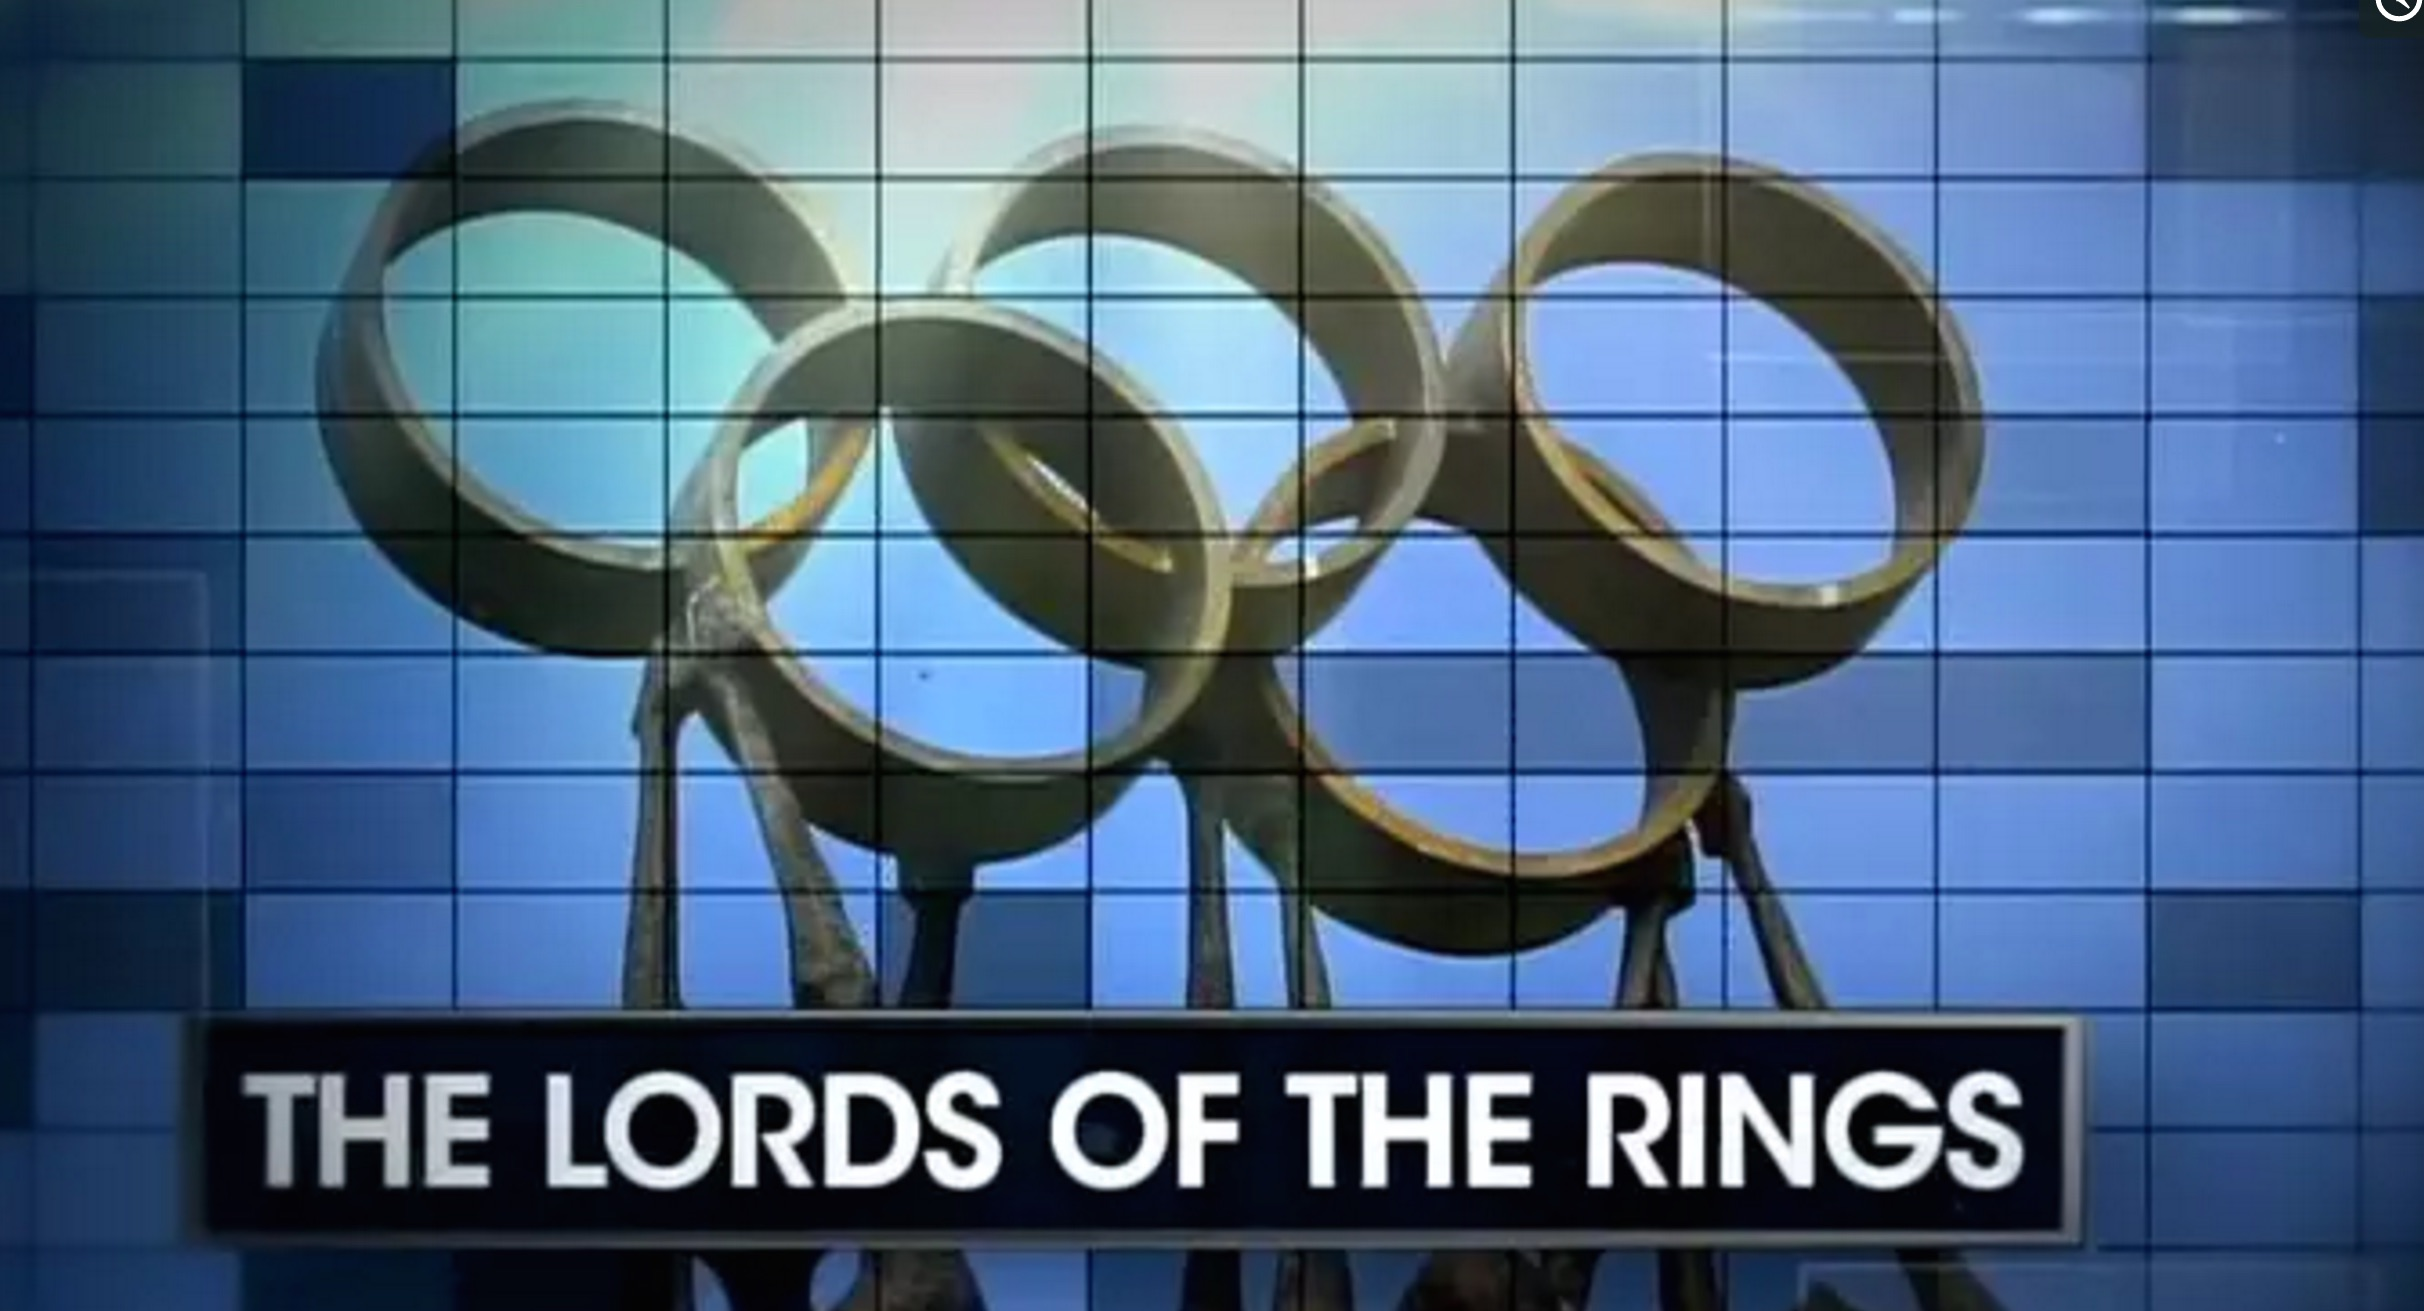 The olympic problem hbo details history of olympic human rights the lords of the rings hbo real sports buycottarizona